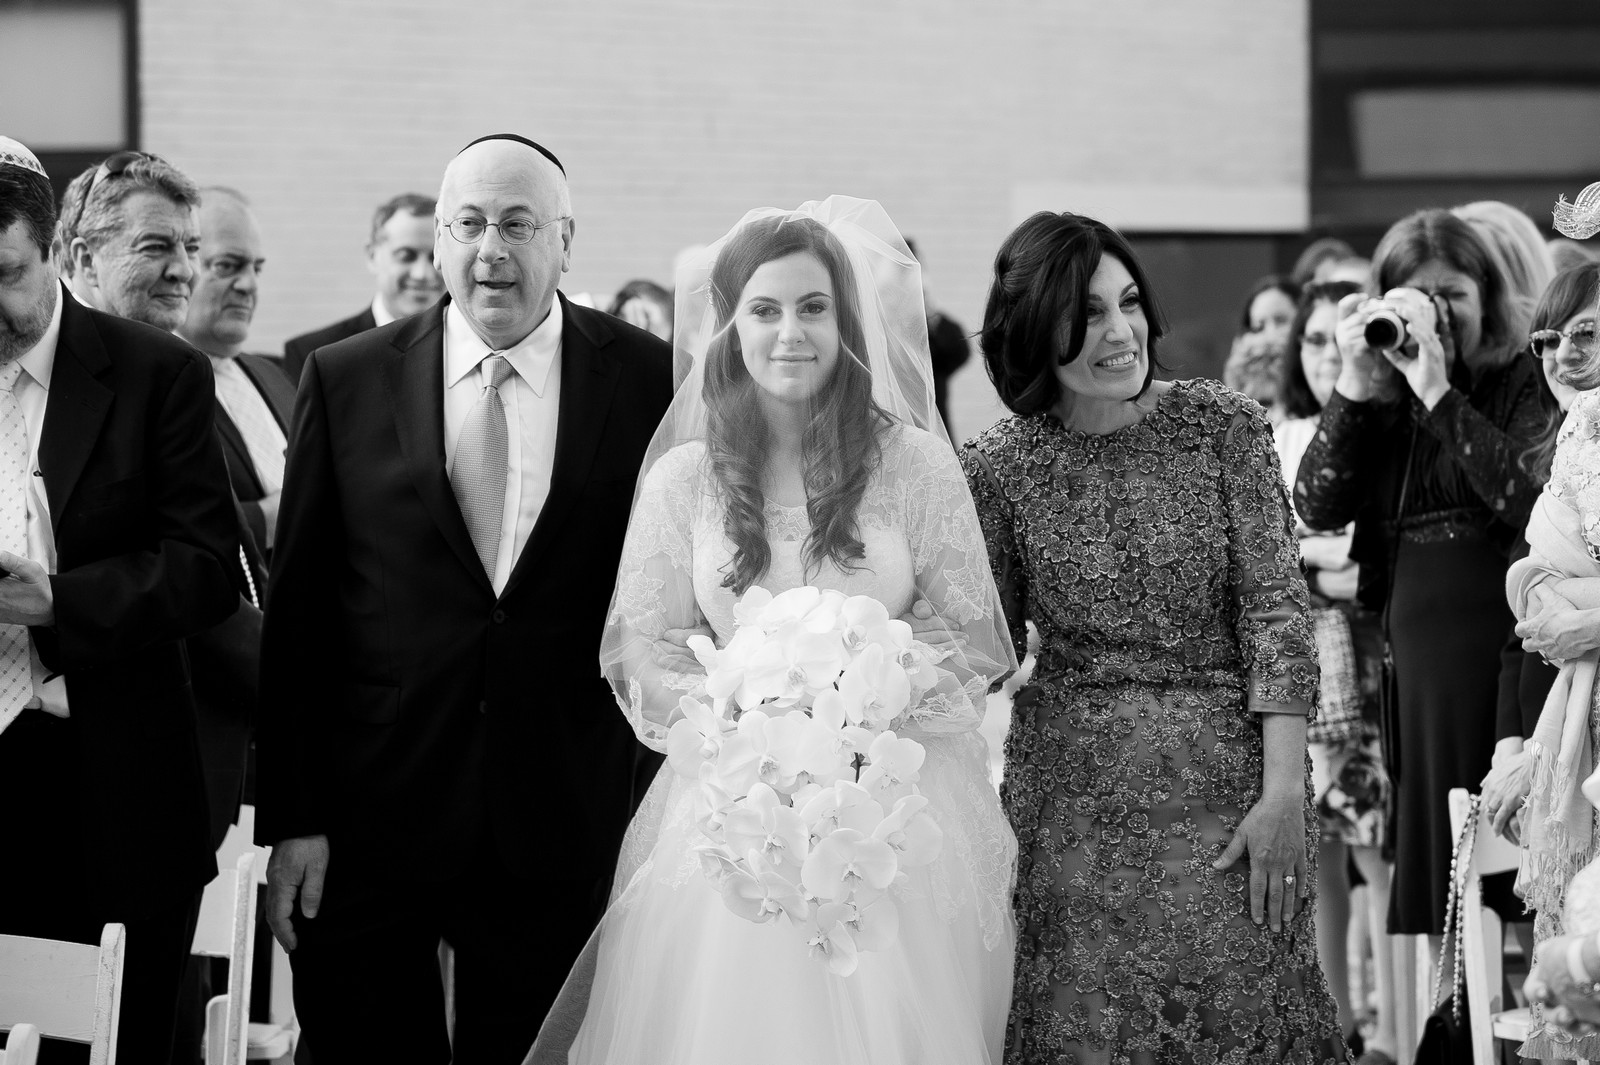 Josh and Michelle's Modern Jewish Wedding at Congregation Keter Torah, Teaneck, New Jersey Photos by Chaim Schvarcz, Chuppah, Bride, Down the Isle